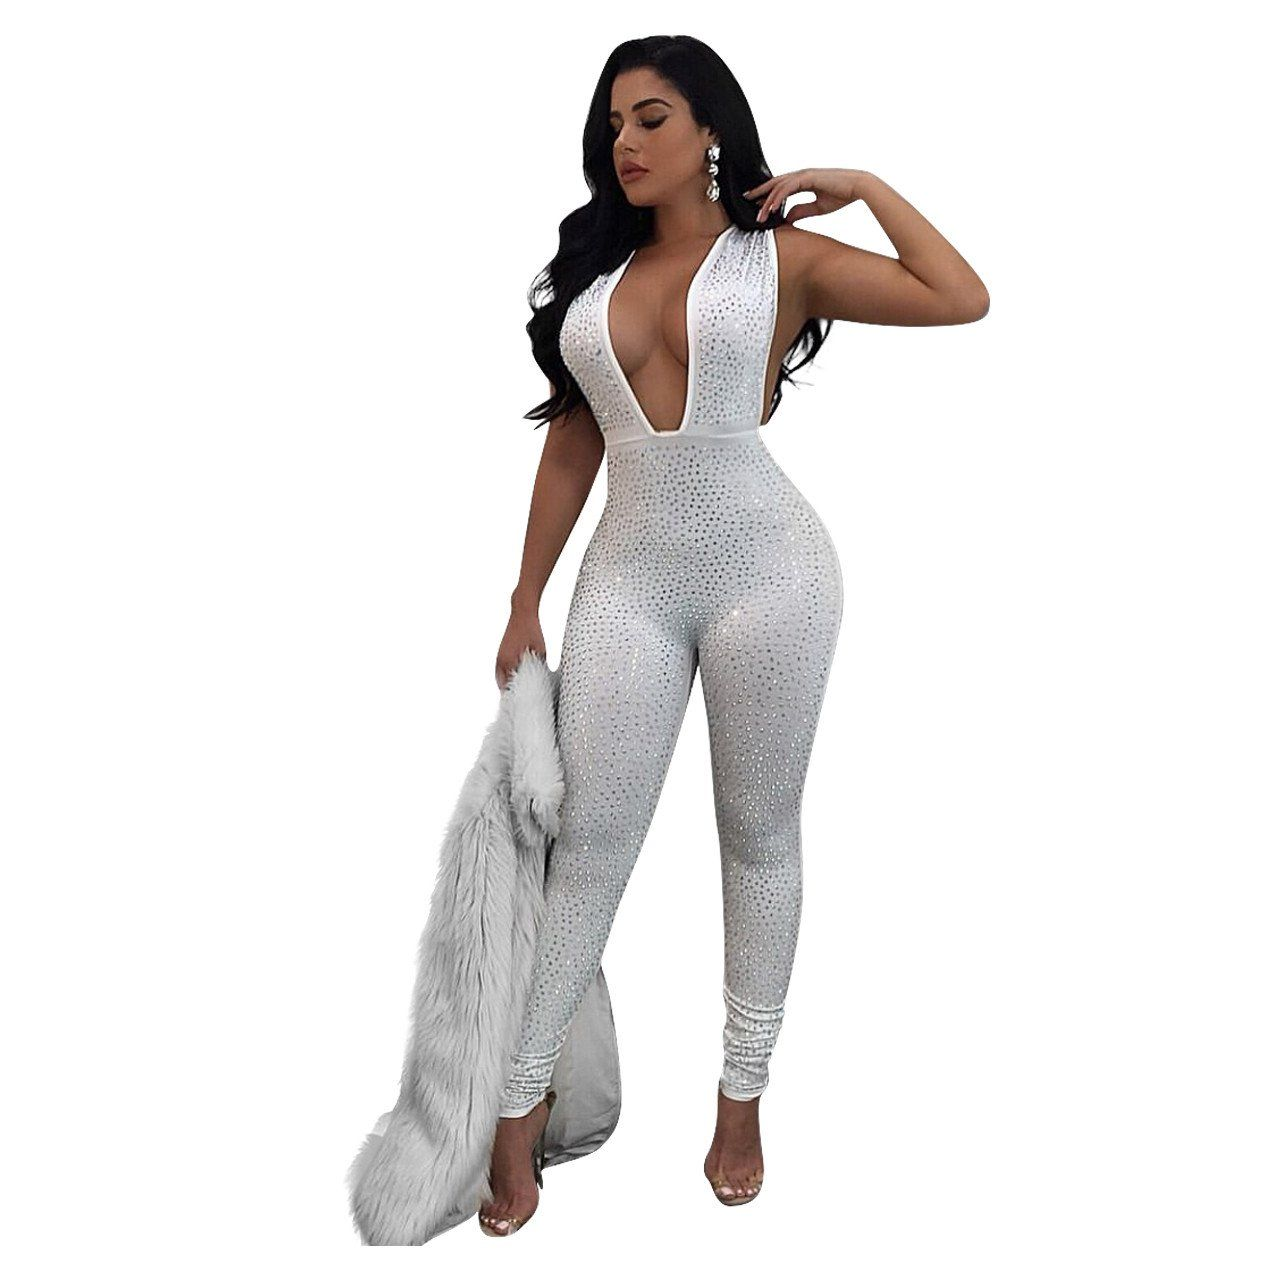 5db38b30318 Polyester sexy Jumpsuits   Rompers. Polyester sexy Jumpsuits   Rompers  Cheap Plus Size ...